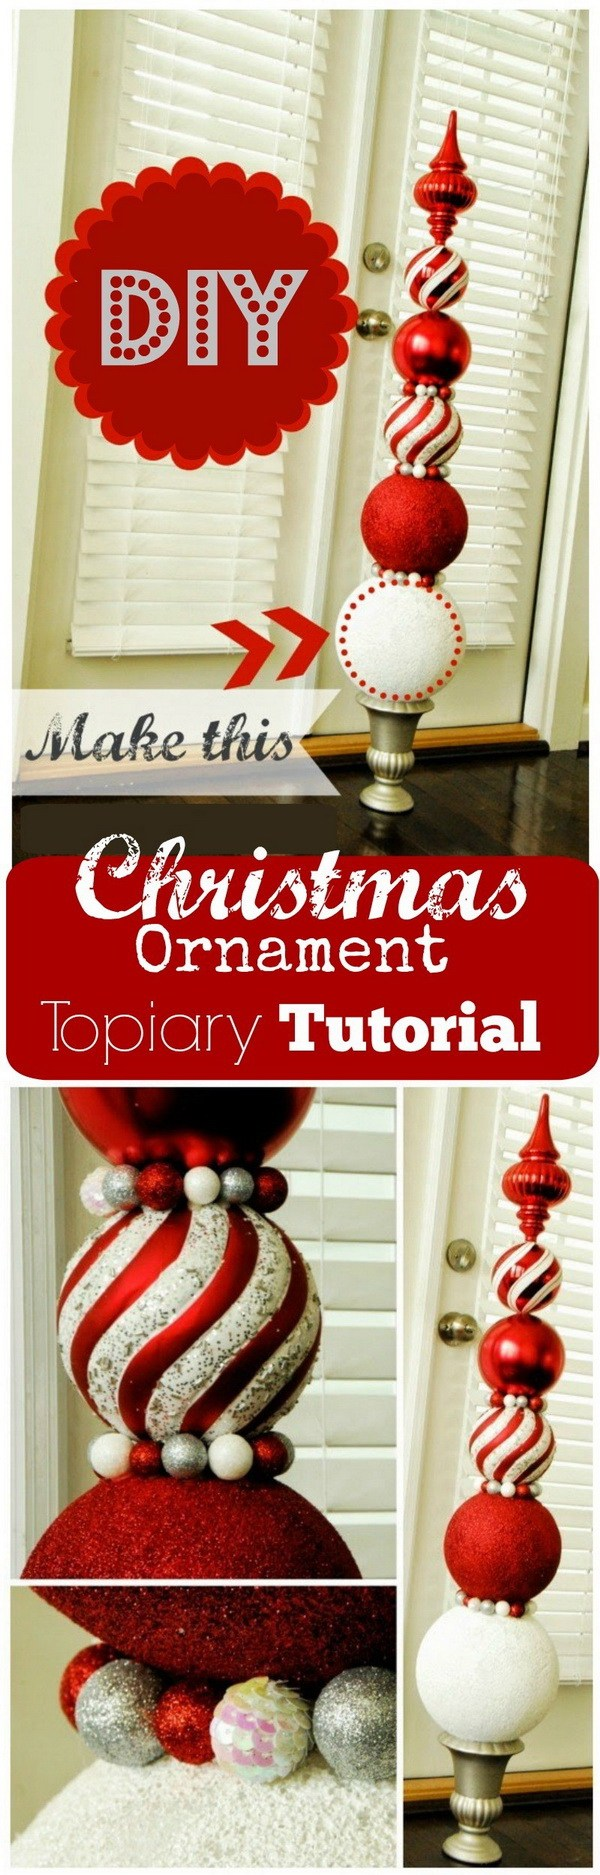 15 Simple And Easy Last Minute Diy Christmas Decorations You Must See,Square Kitchen Layout